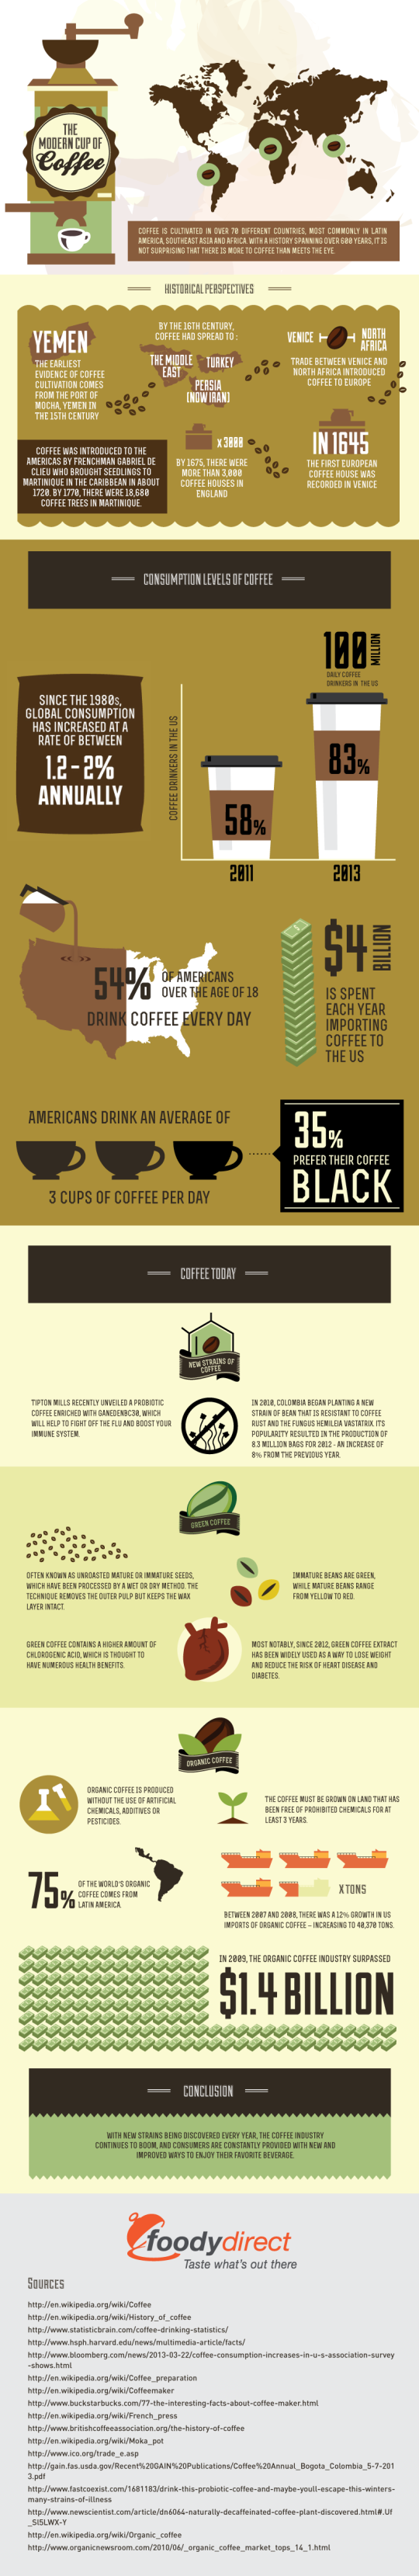 the-modern-cup-of-coffee-infographic5-2